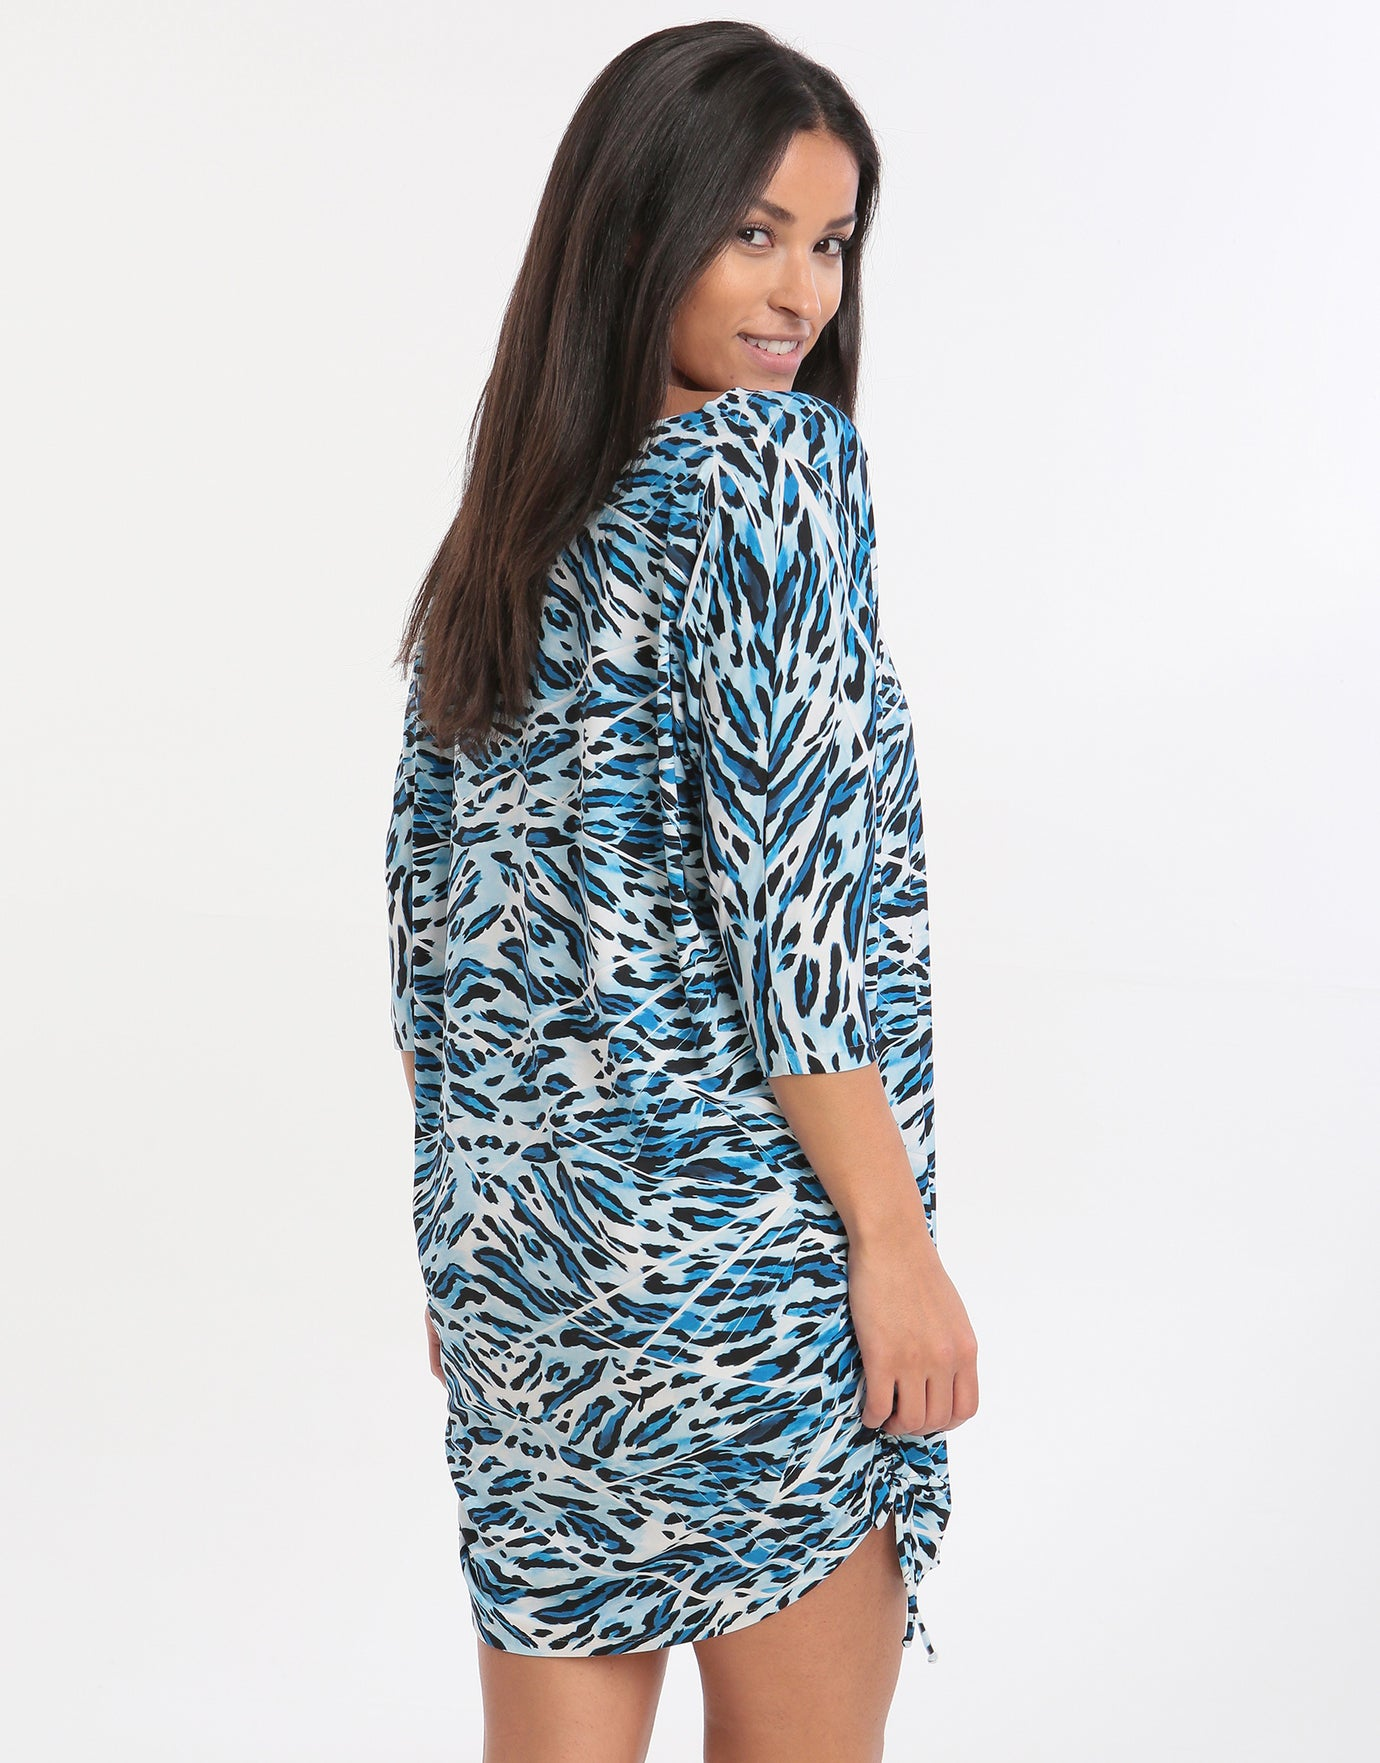 Roidal Africa Doria Dress - Blue